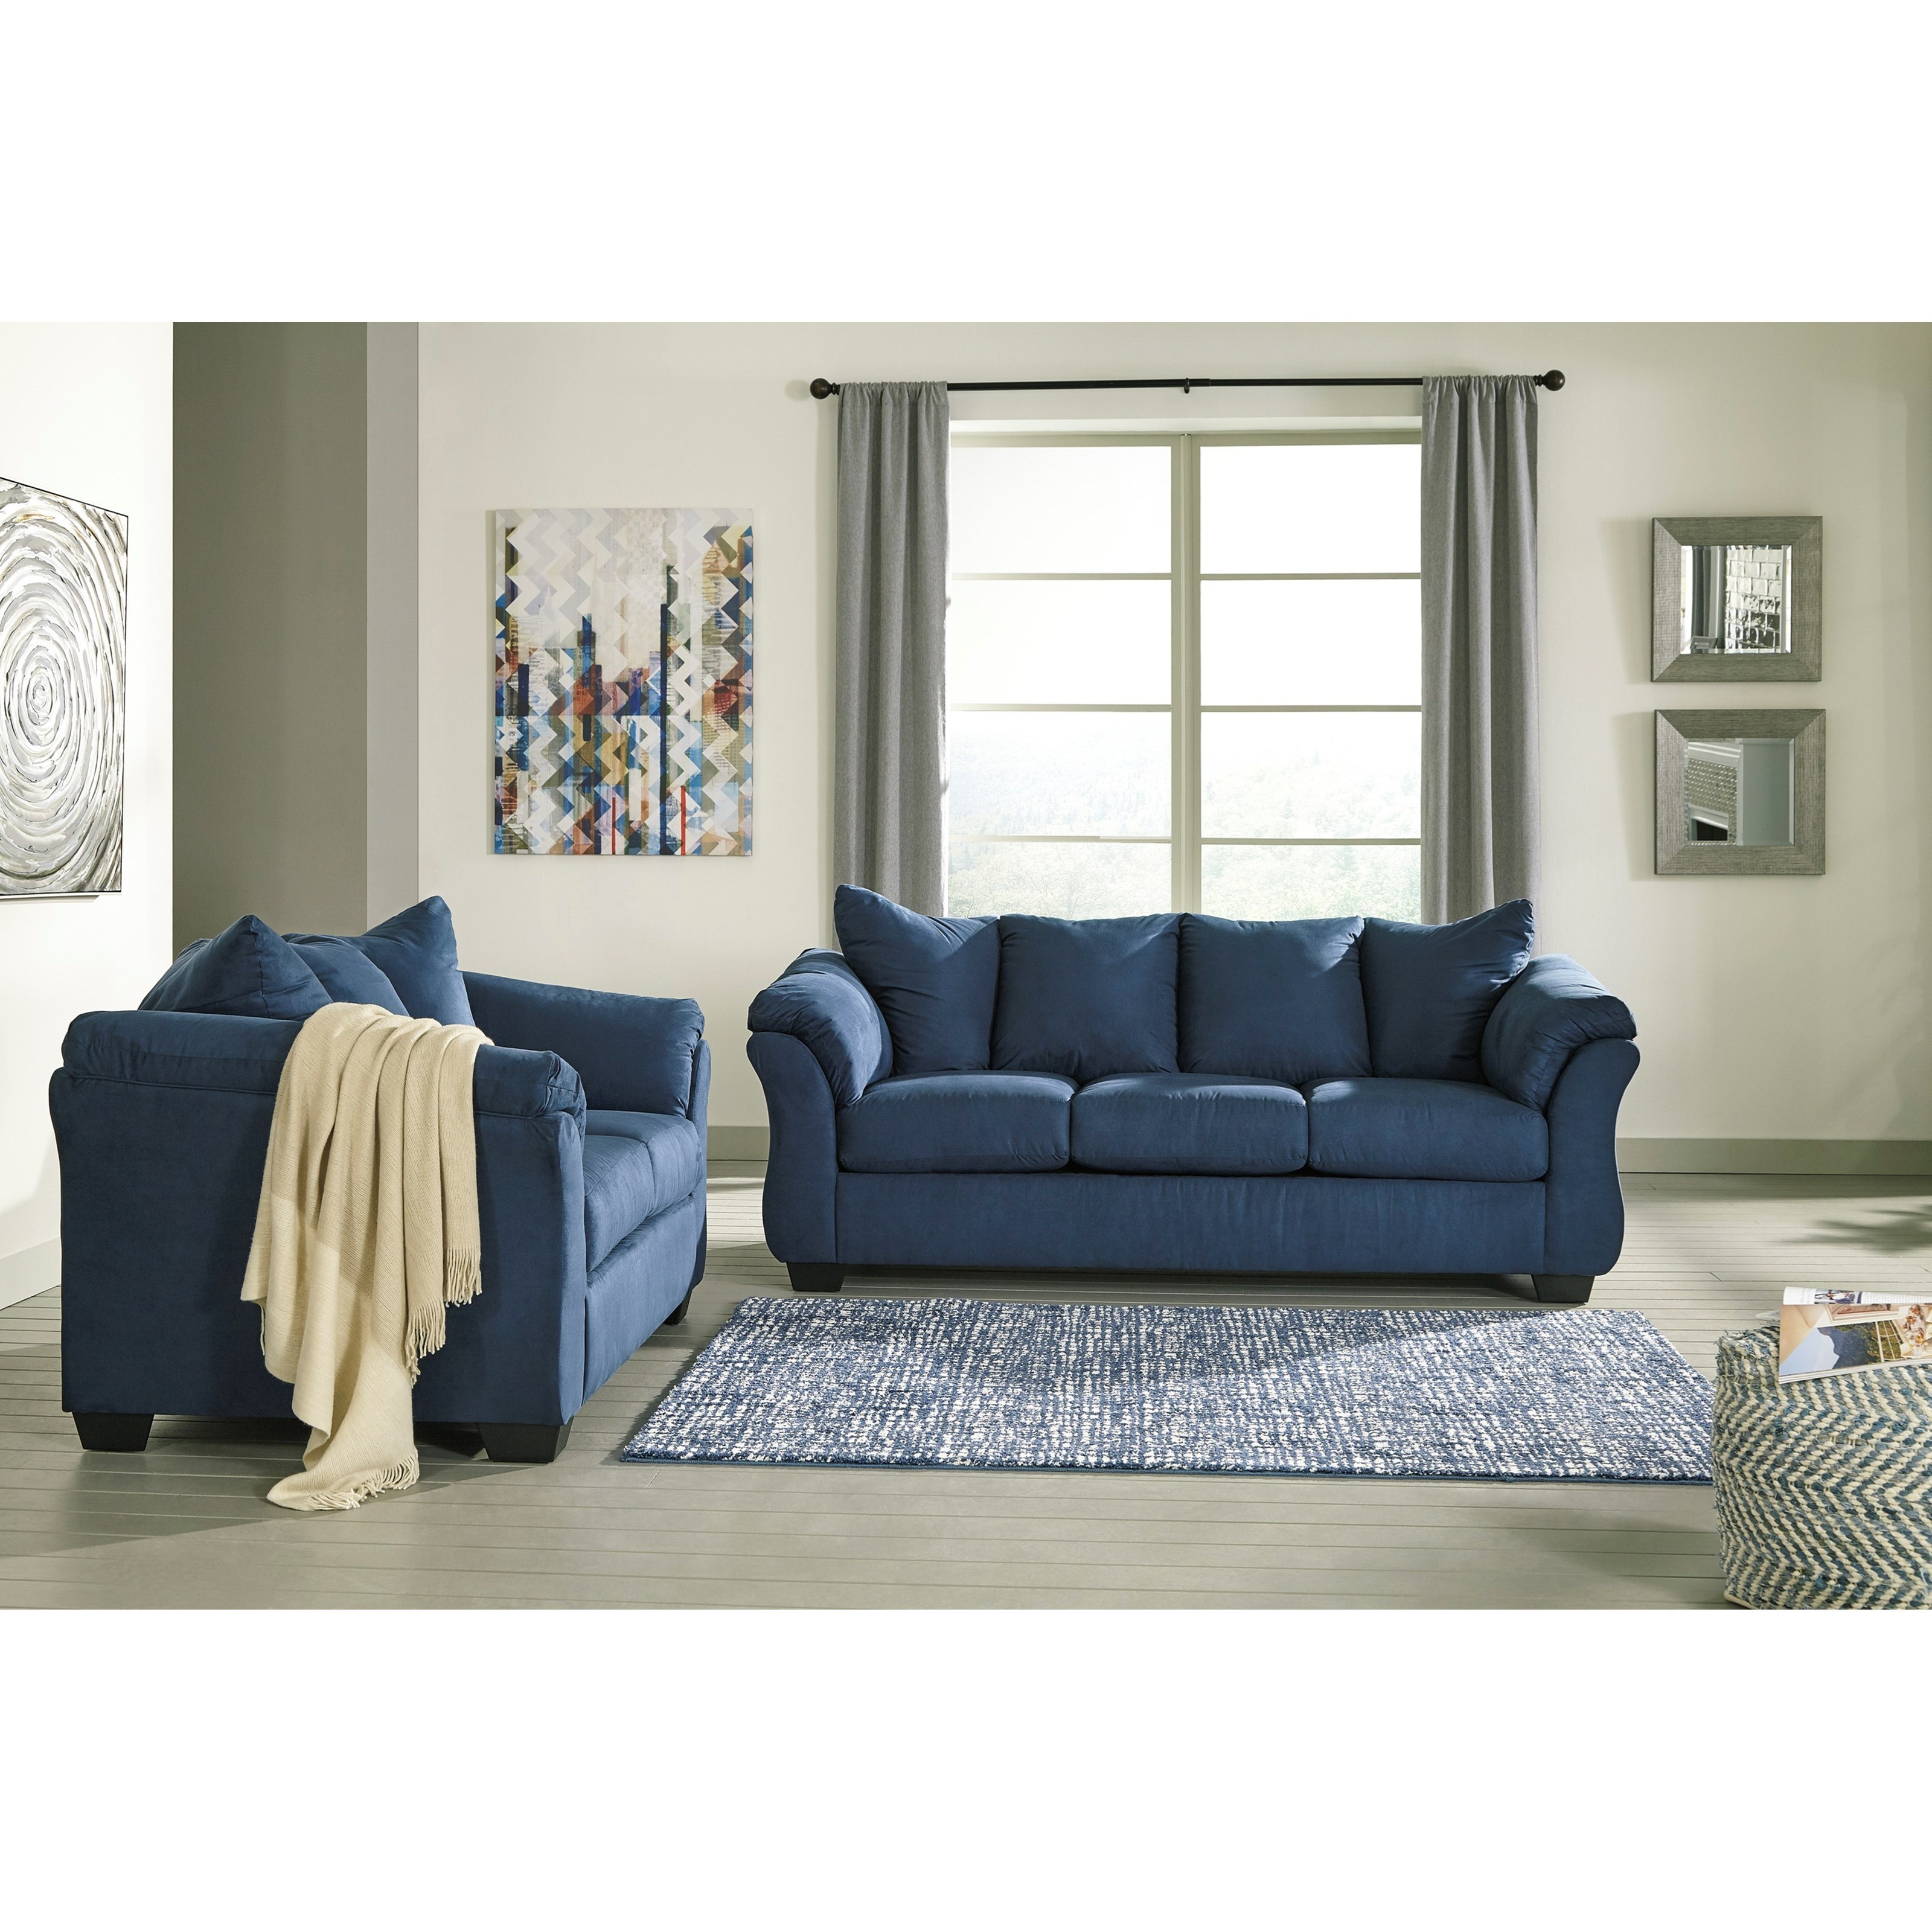 Signature Design By Ashley Darcy   Blue Stationary Living Room Group